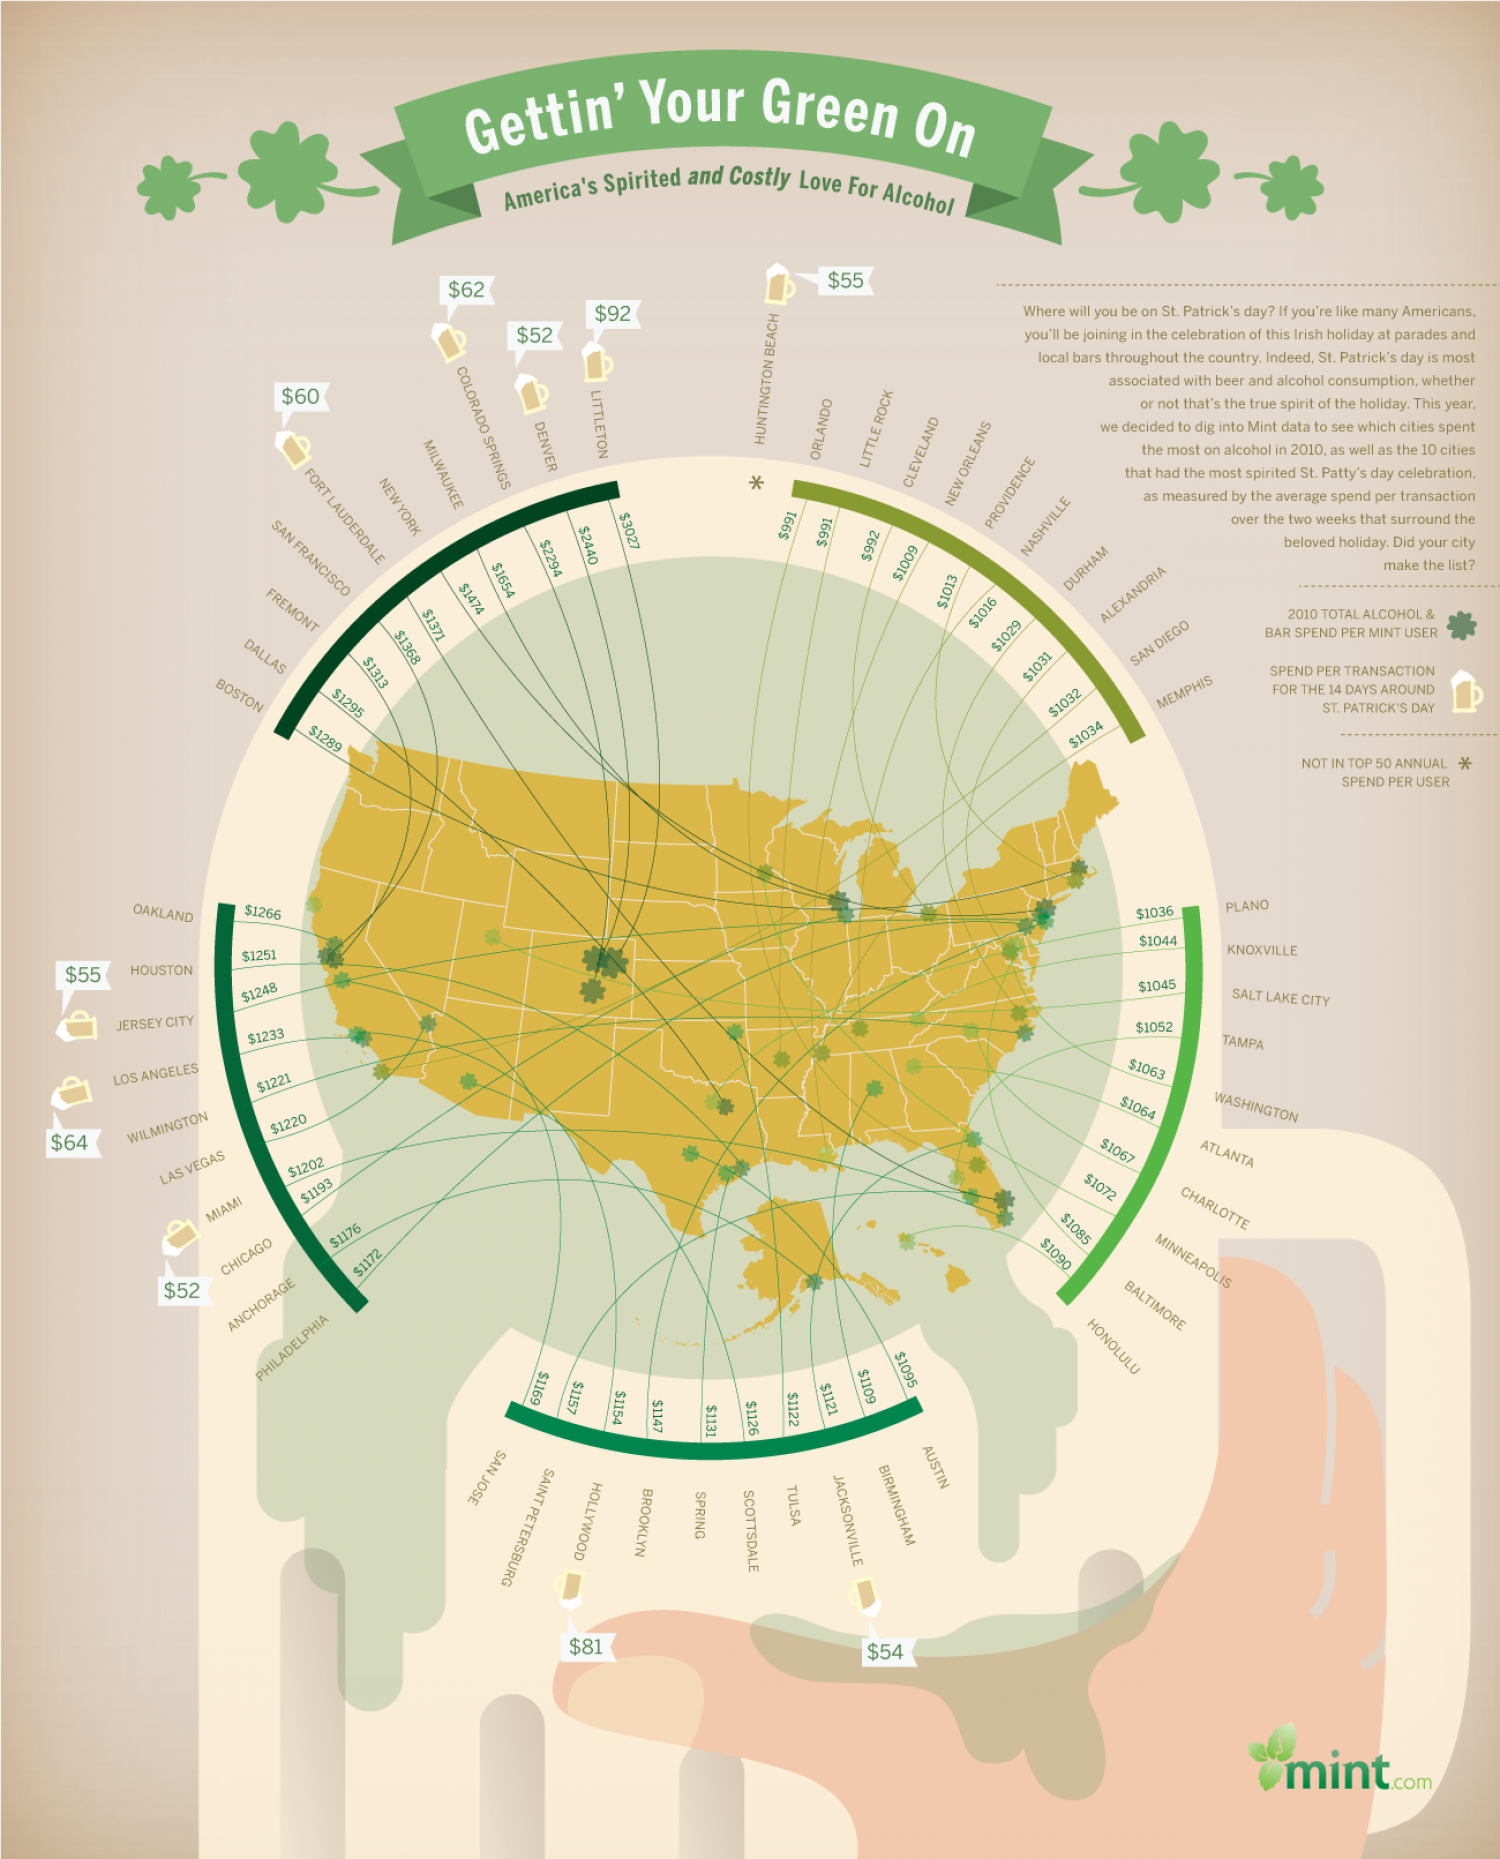 Gettin' Your Green On: America's Spirited And Costly Love For Alcohol Infographic